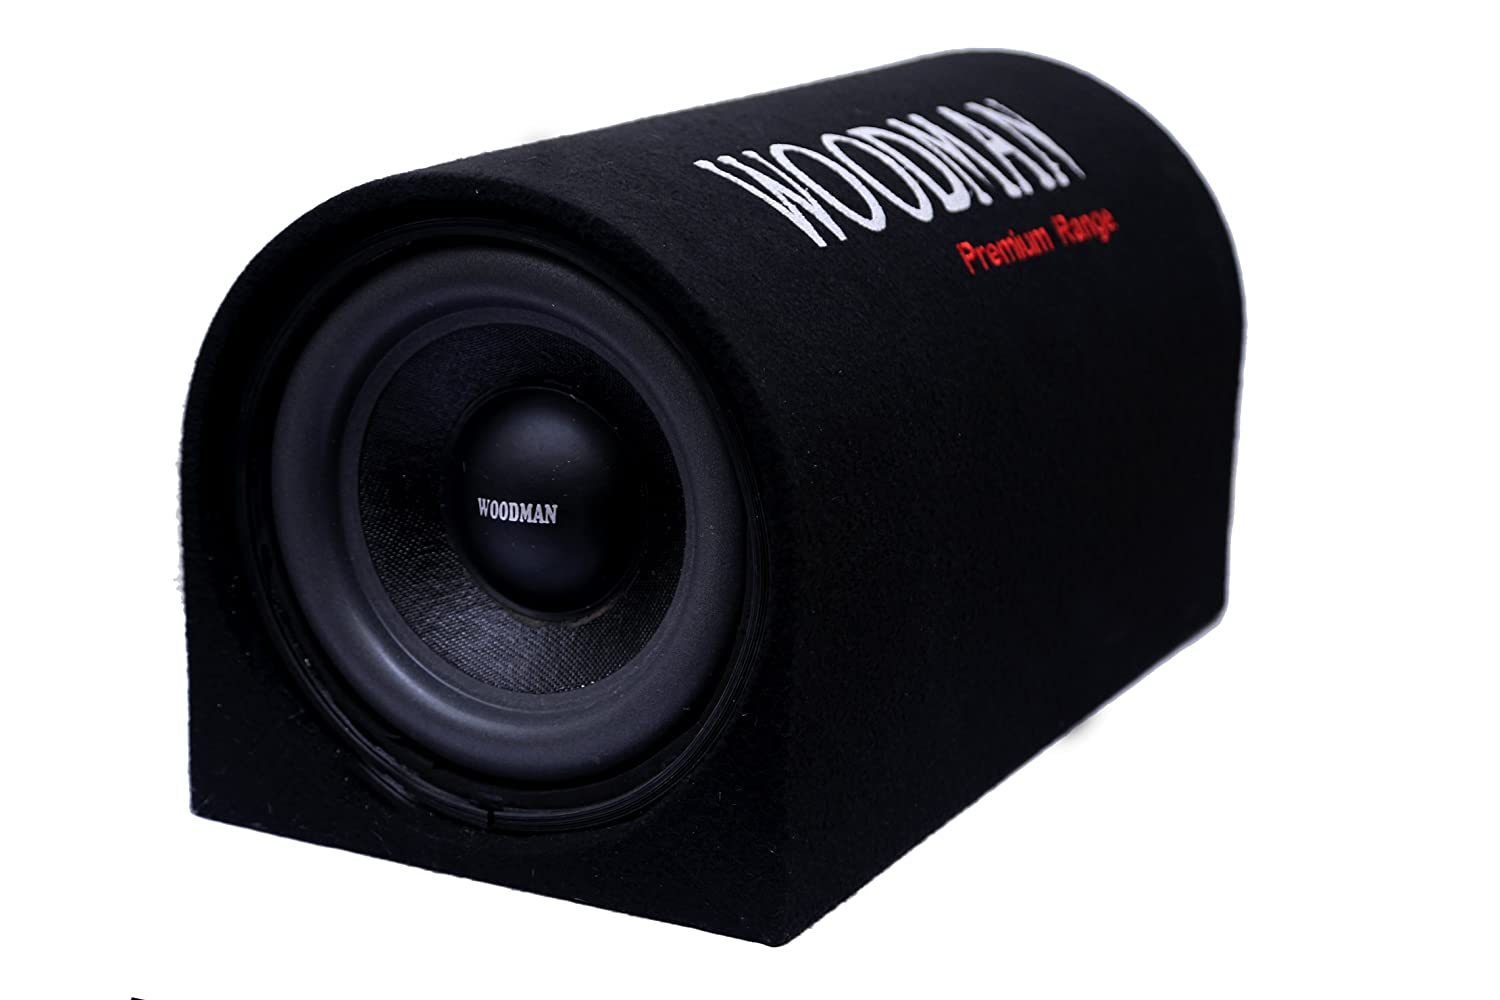 Woodman bt10 10 inch bass tube with in built amplifier amazon in electronics